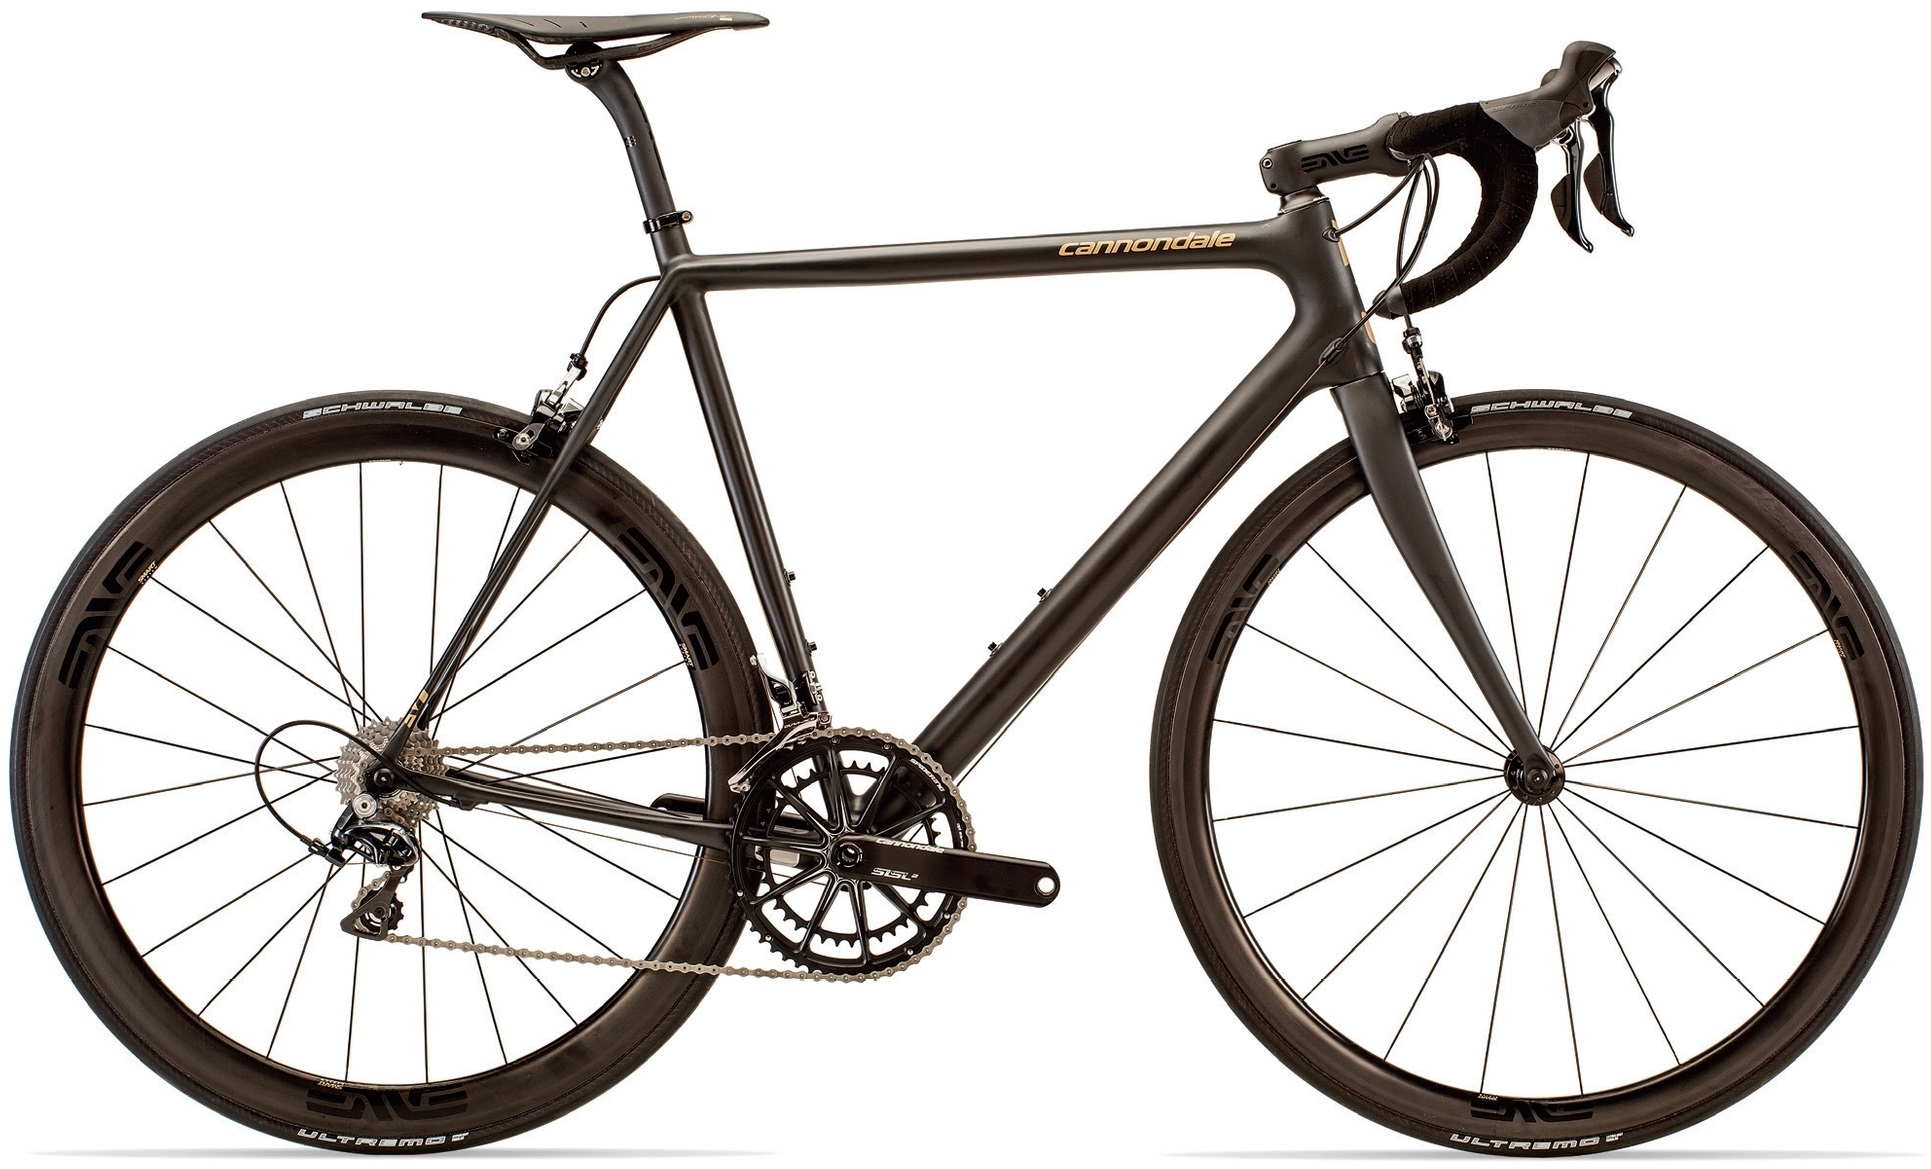 2016 Cannondale Supersix Evo blackneuroticarnutz2016 Cannondale Supersix Evo black2016 Nerve 600SL black campy record